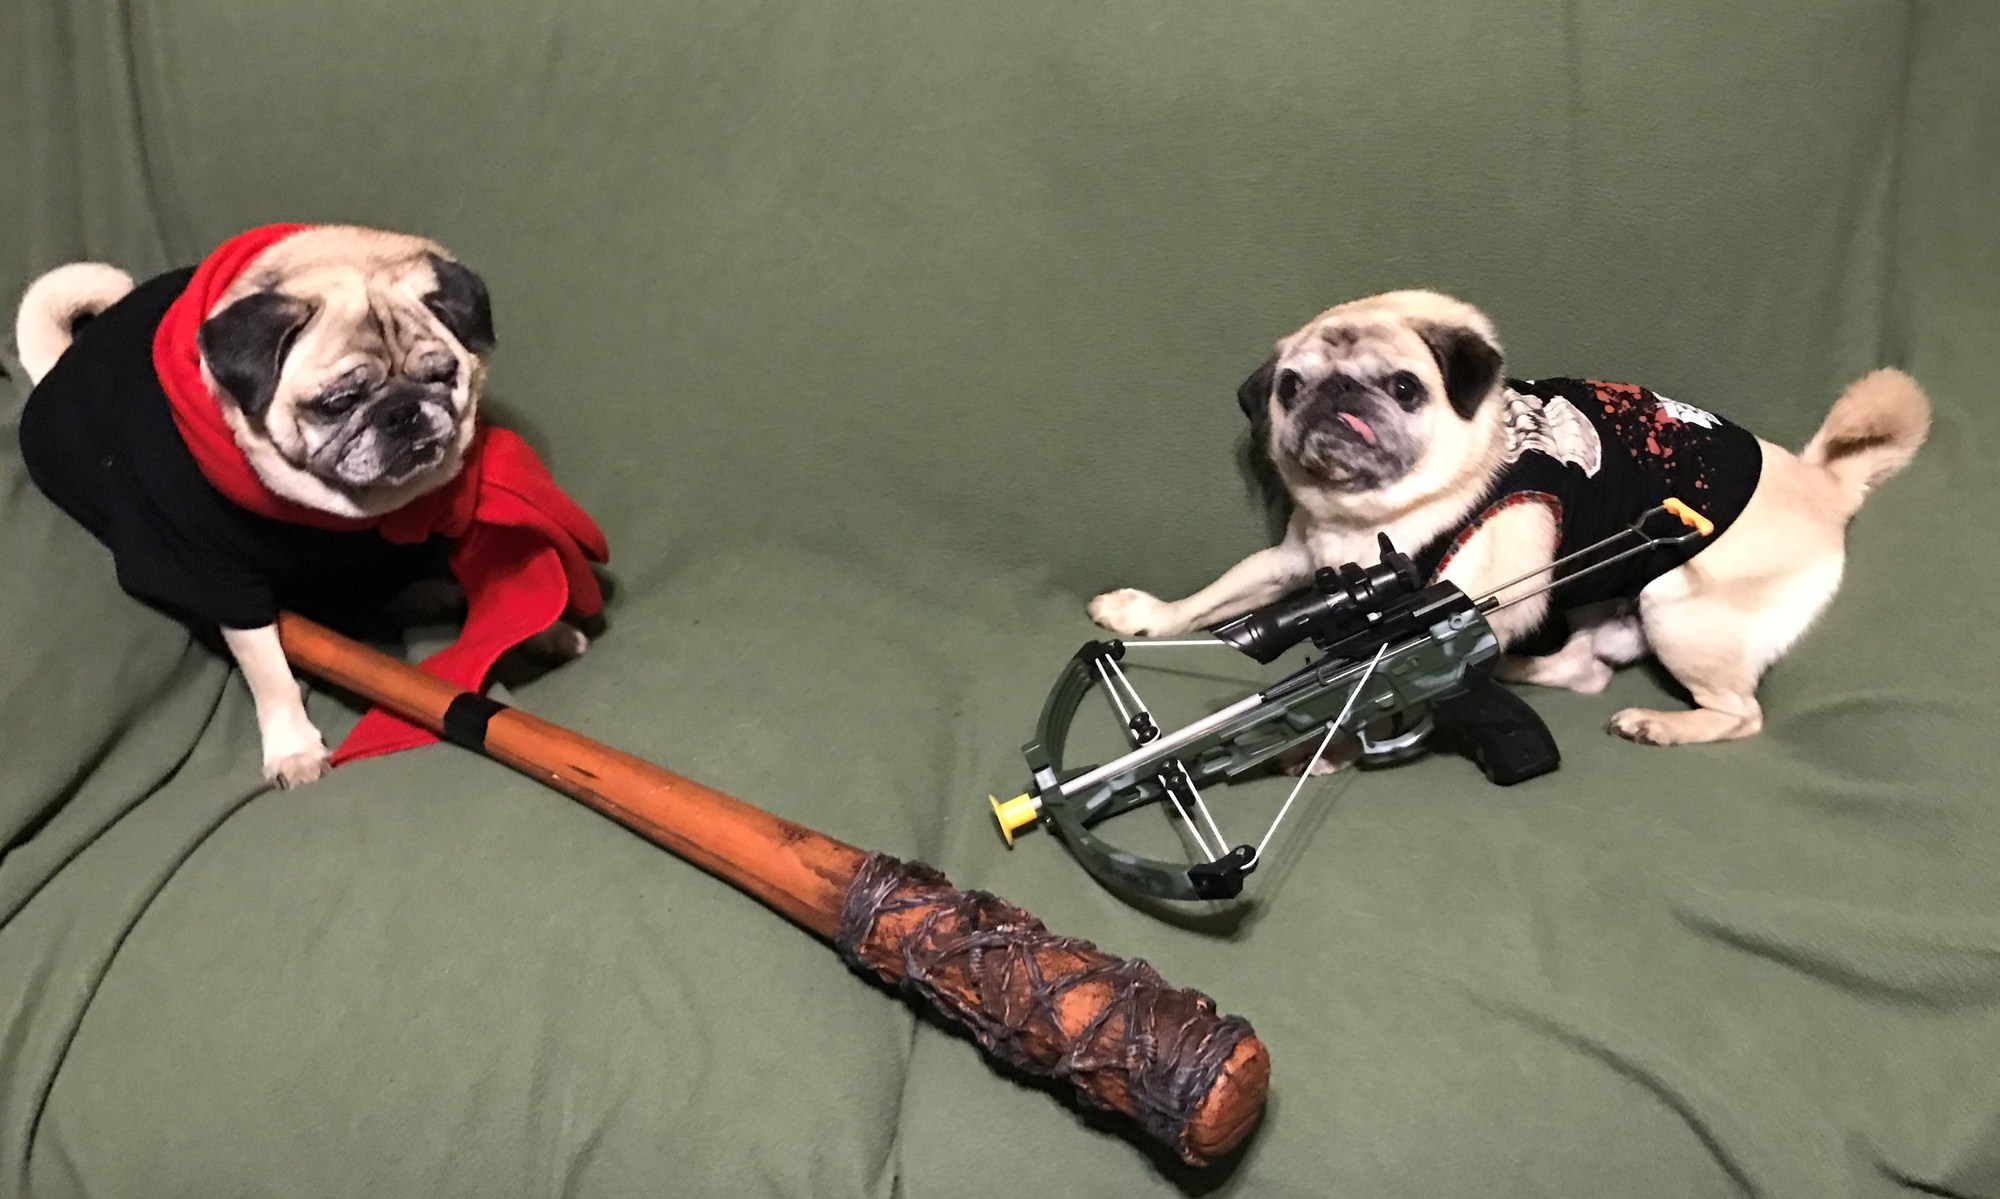 The Walking Dead pugs Owen and Butkus was submitted by Jodi as an  entrant in the Town's Halloween costume photo contest.  Photo Courtesy of Tohcares.com